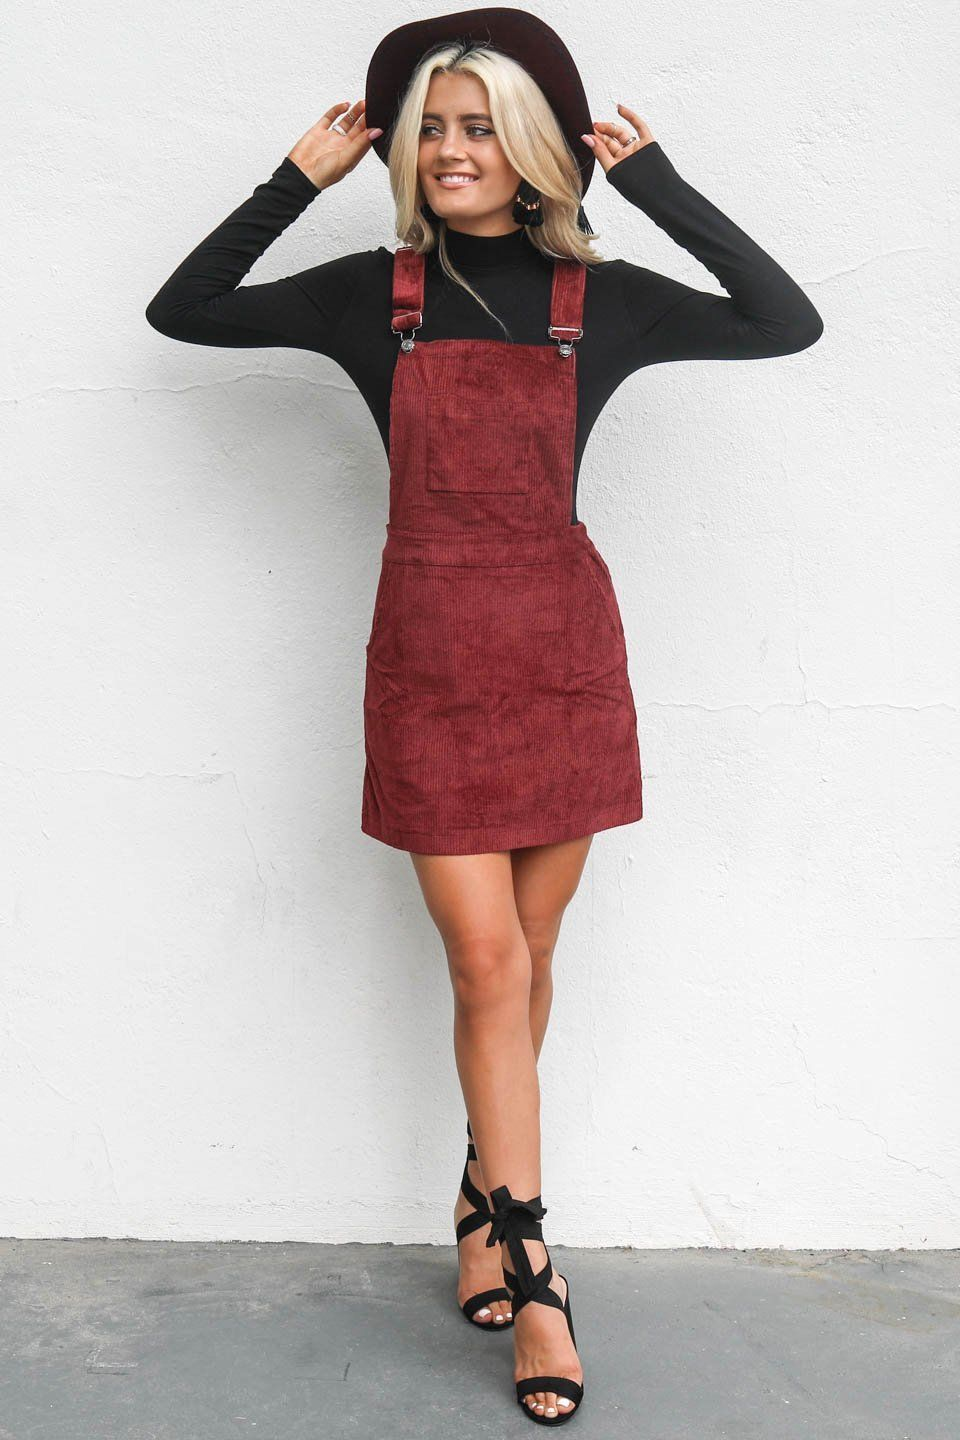 Corduroy Overall Dress Outfits